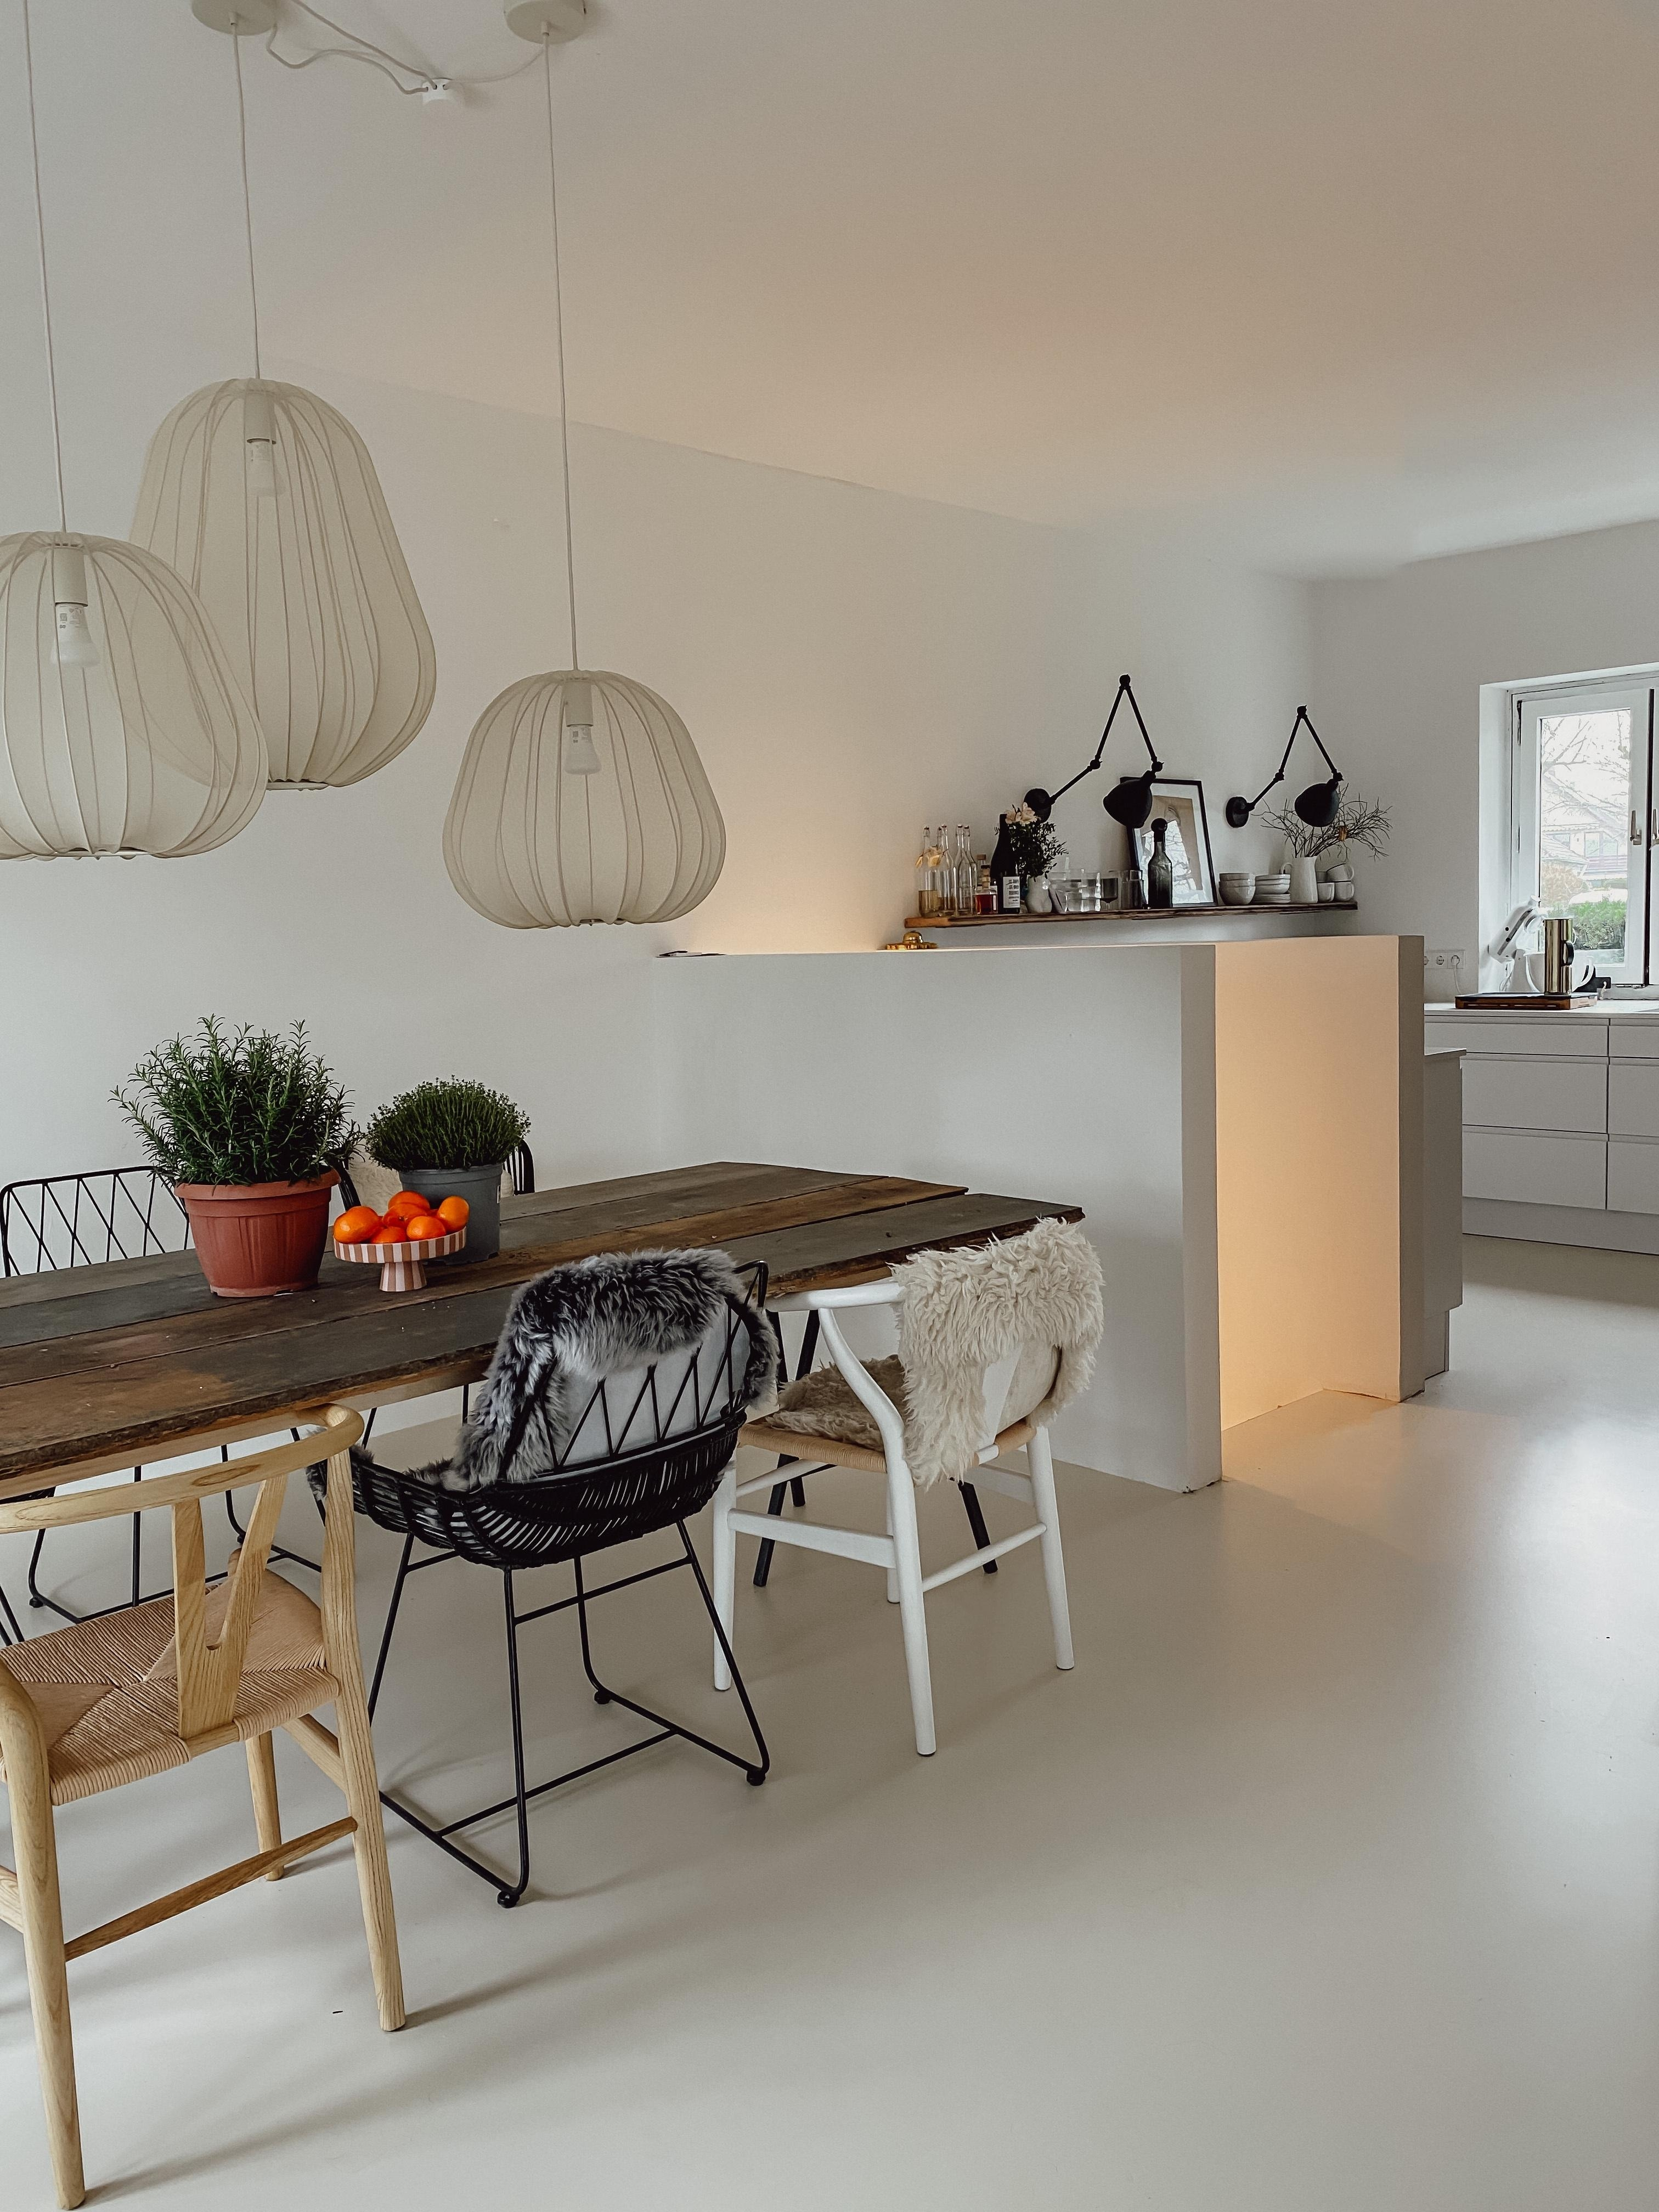 #esszimmer #esstisch #chairs #bolia #openkitchen #woodtable #diy #lightning #diningroom #diningtable #couchliebT